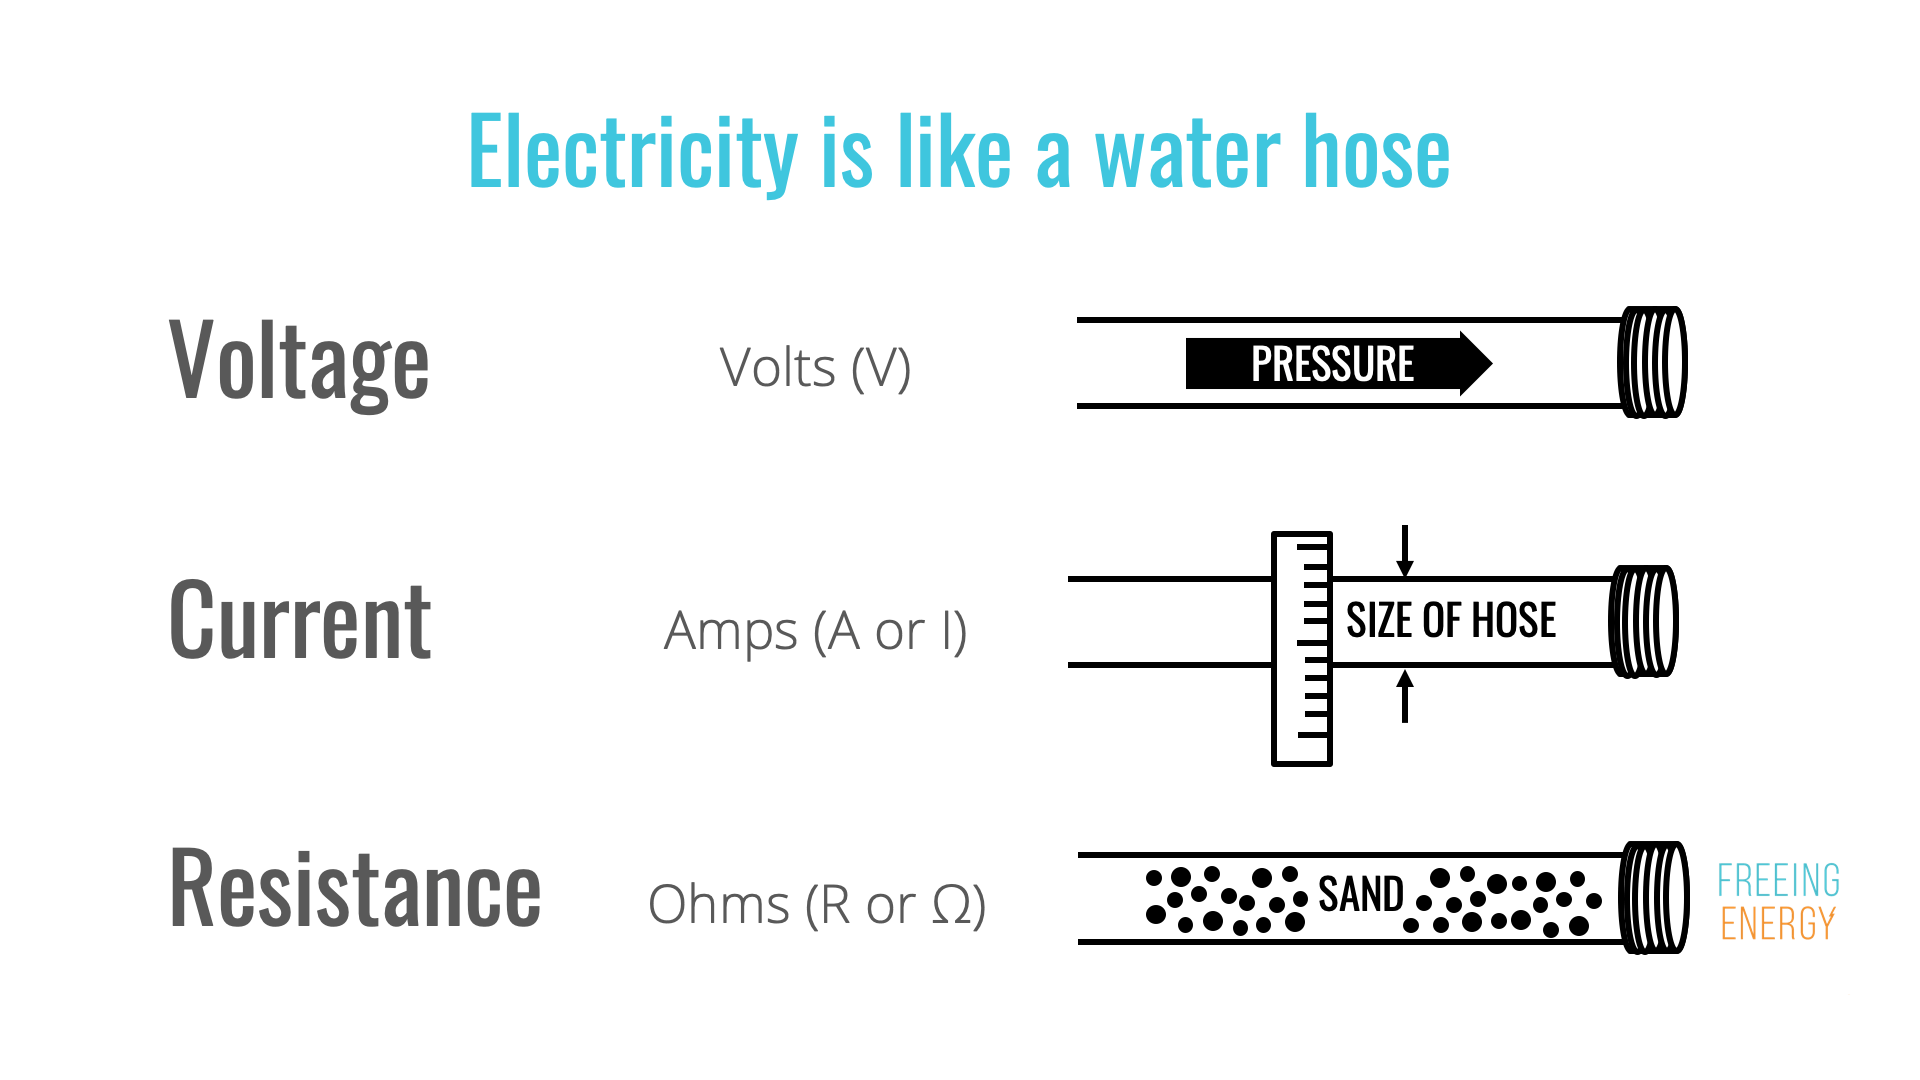 Understanding the basics of electricity by thinking of it as water